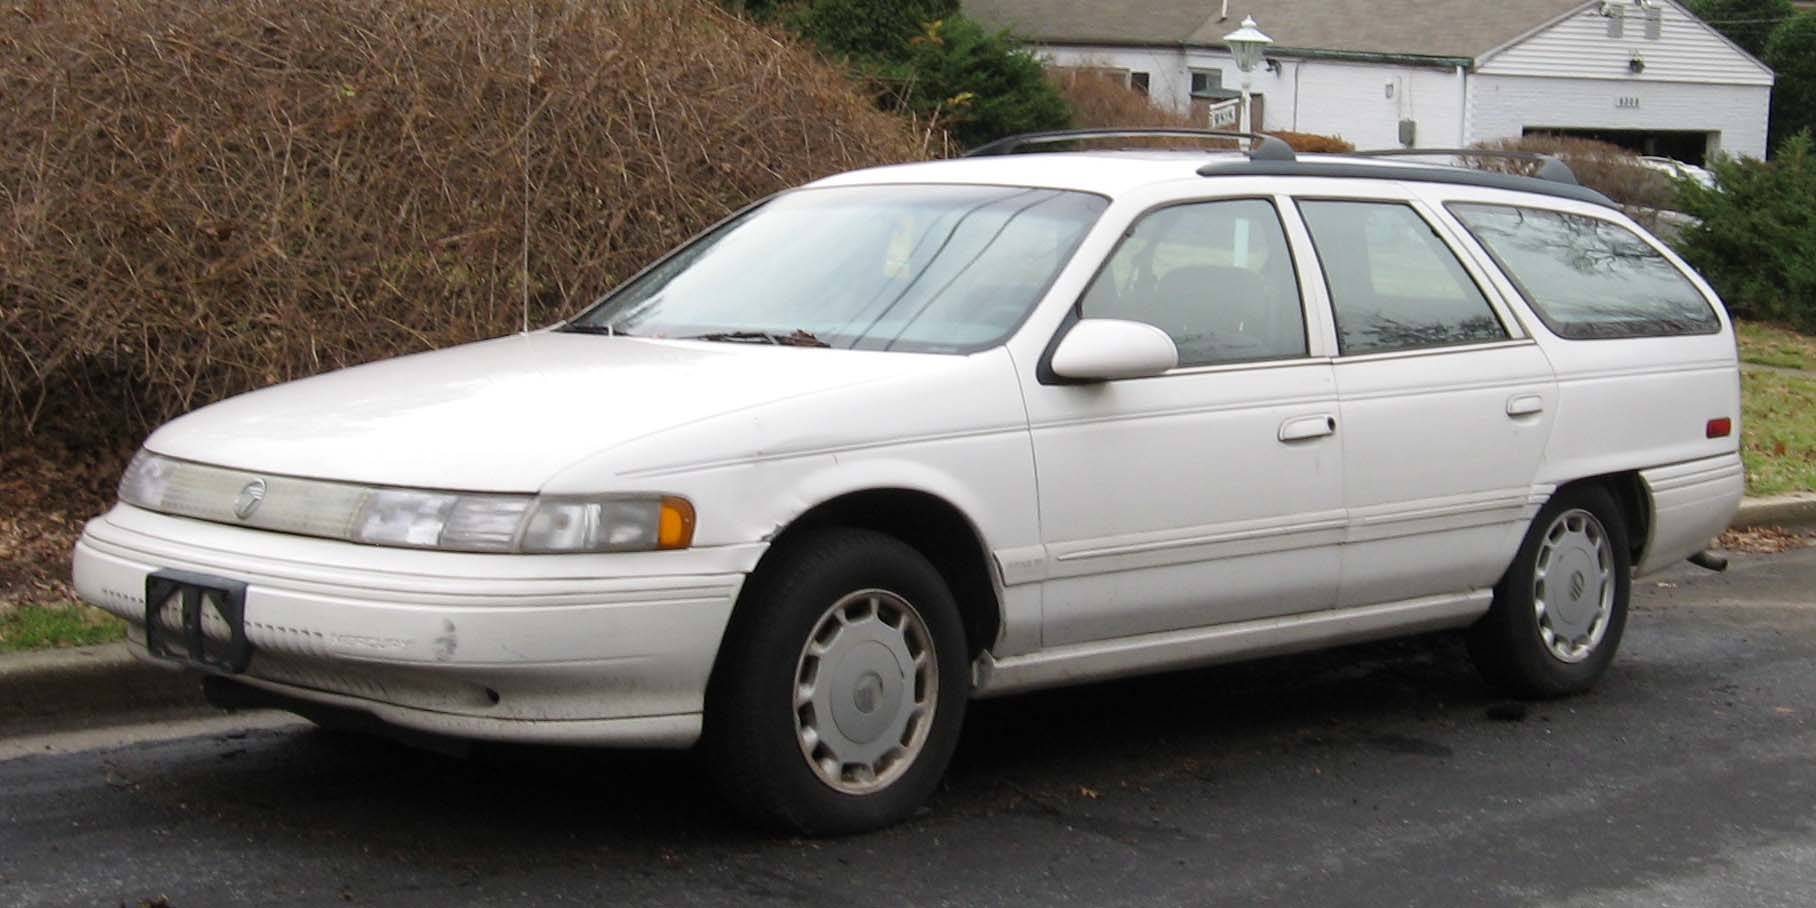 hight resolution of 95 buick lesabre 93 toyota corolla mercury sable station wagon ford